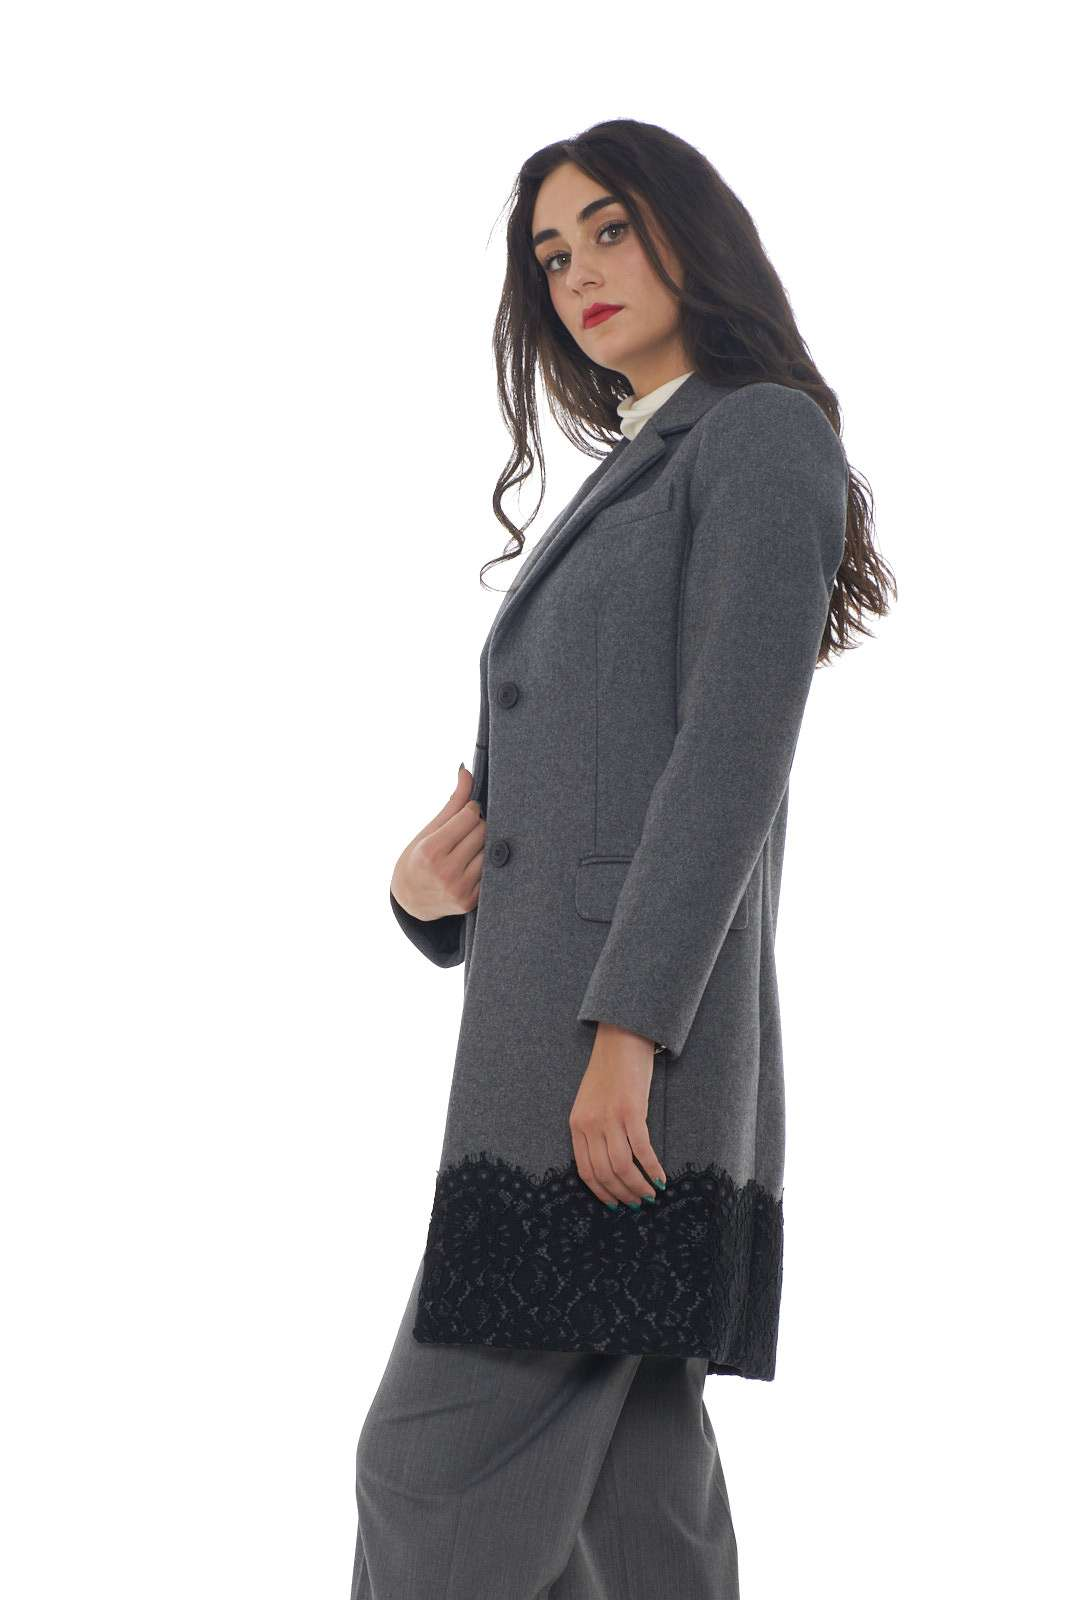 https://www.parmax.com/media/catalog/product/a/i/AI-outlet_parmax-cappotto-donna-Twin-Set-192TP2314-B.jpg